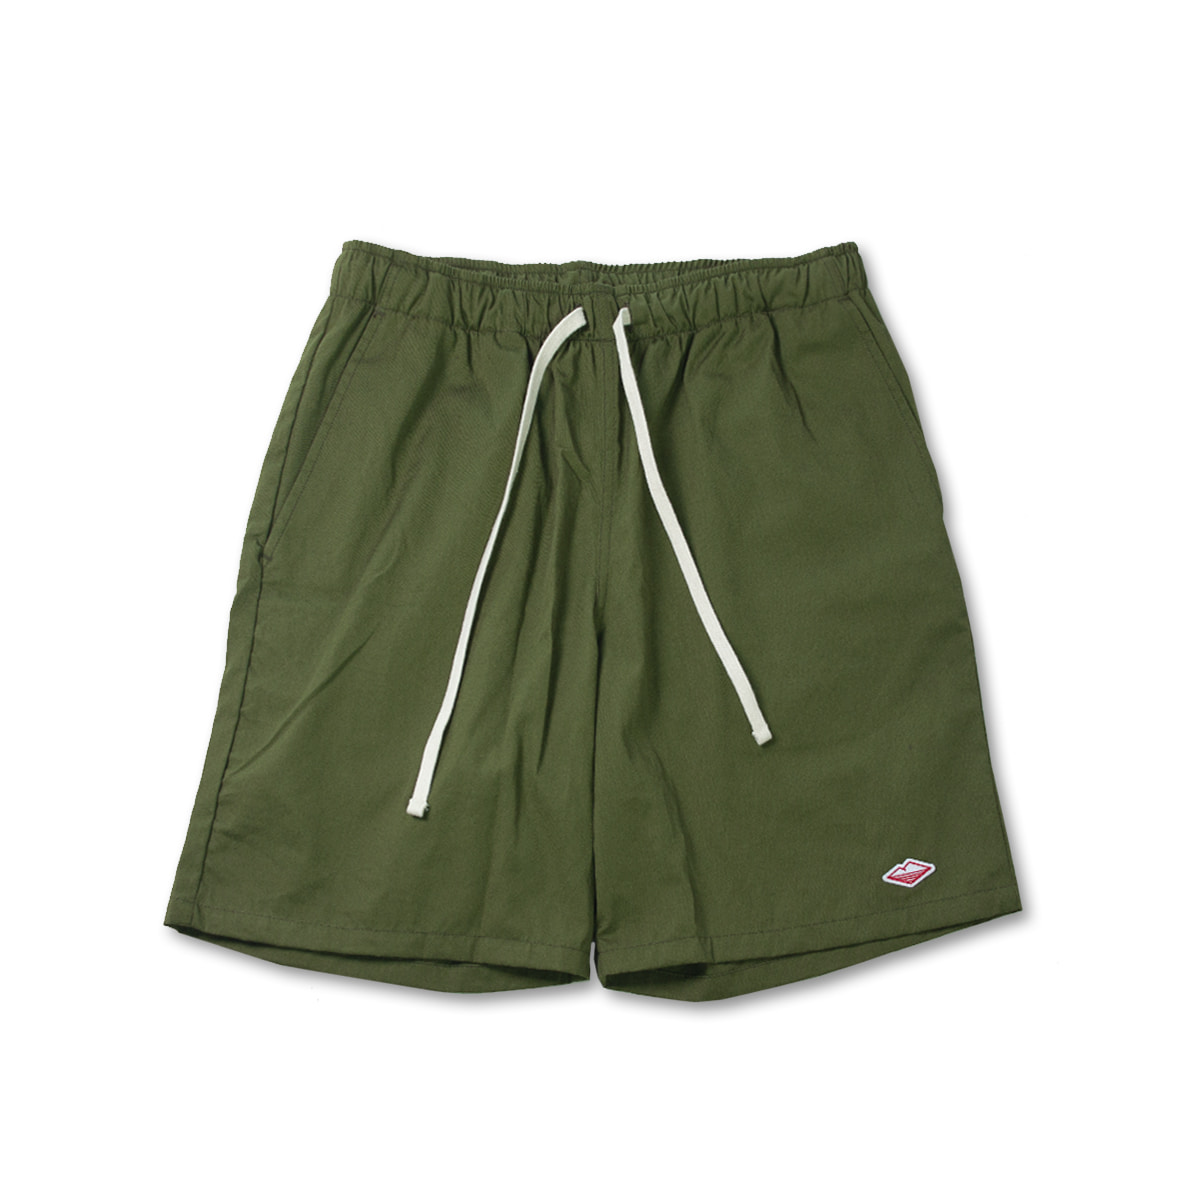 [BATTENWEAR] ACTIVE LAZY SHORTS 'OLIVE'